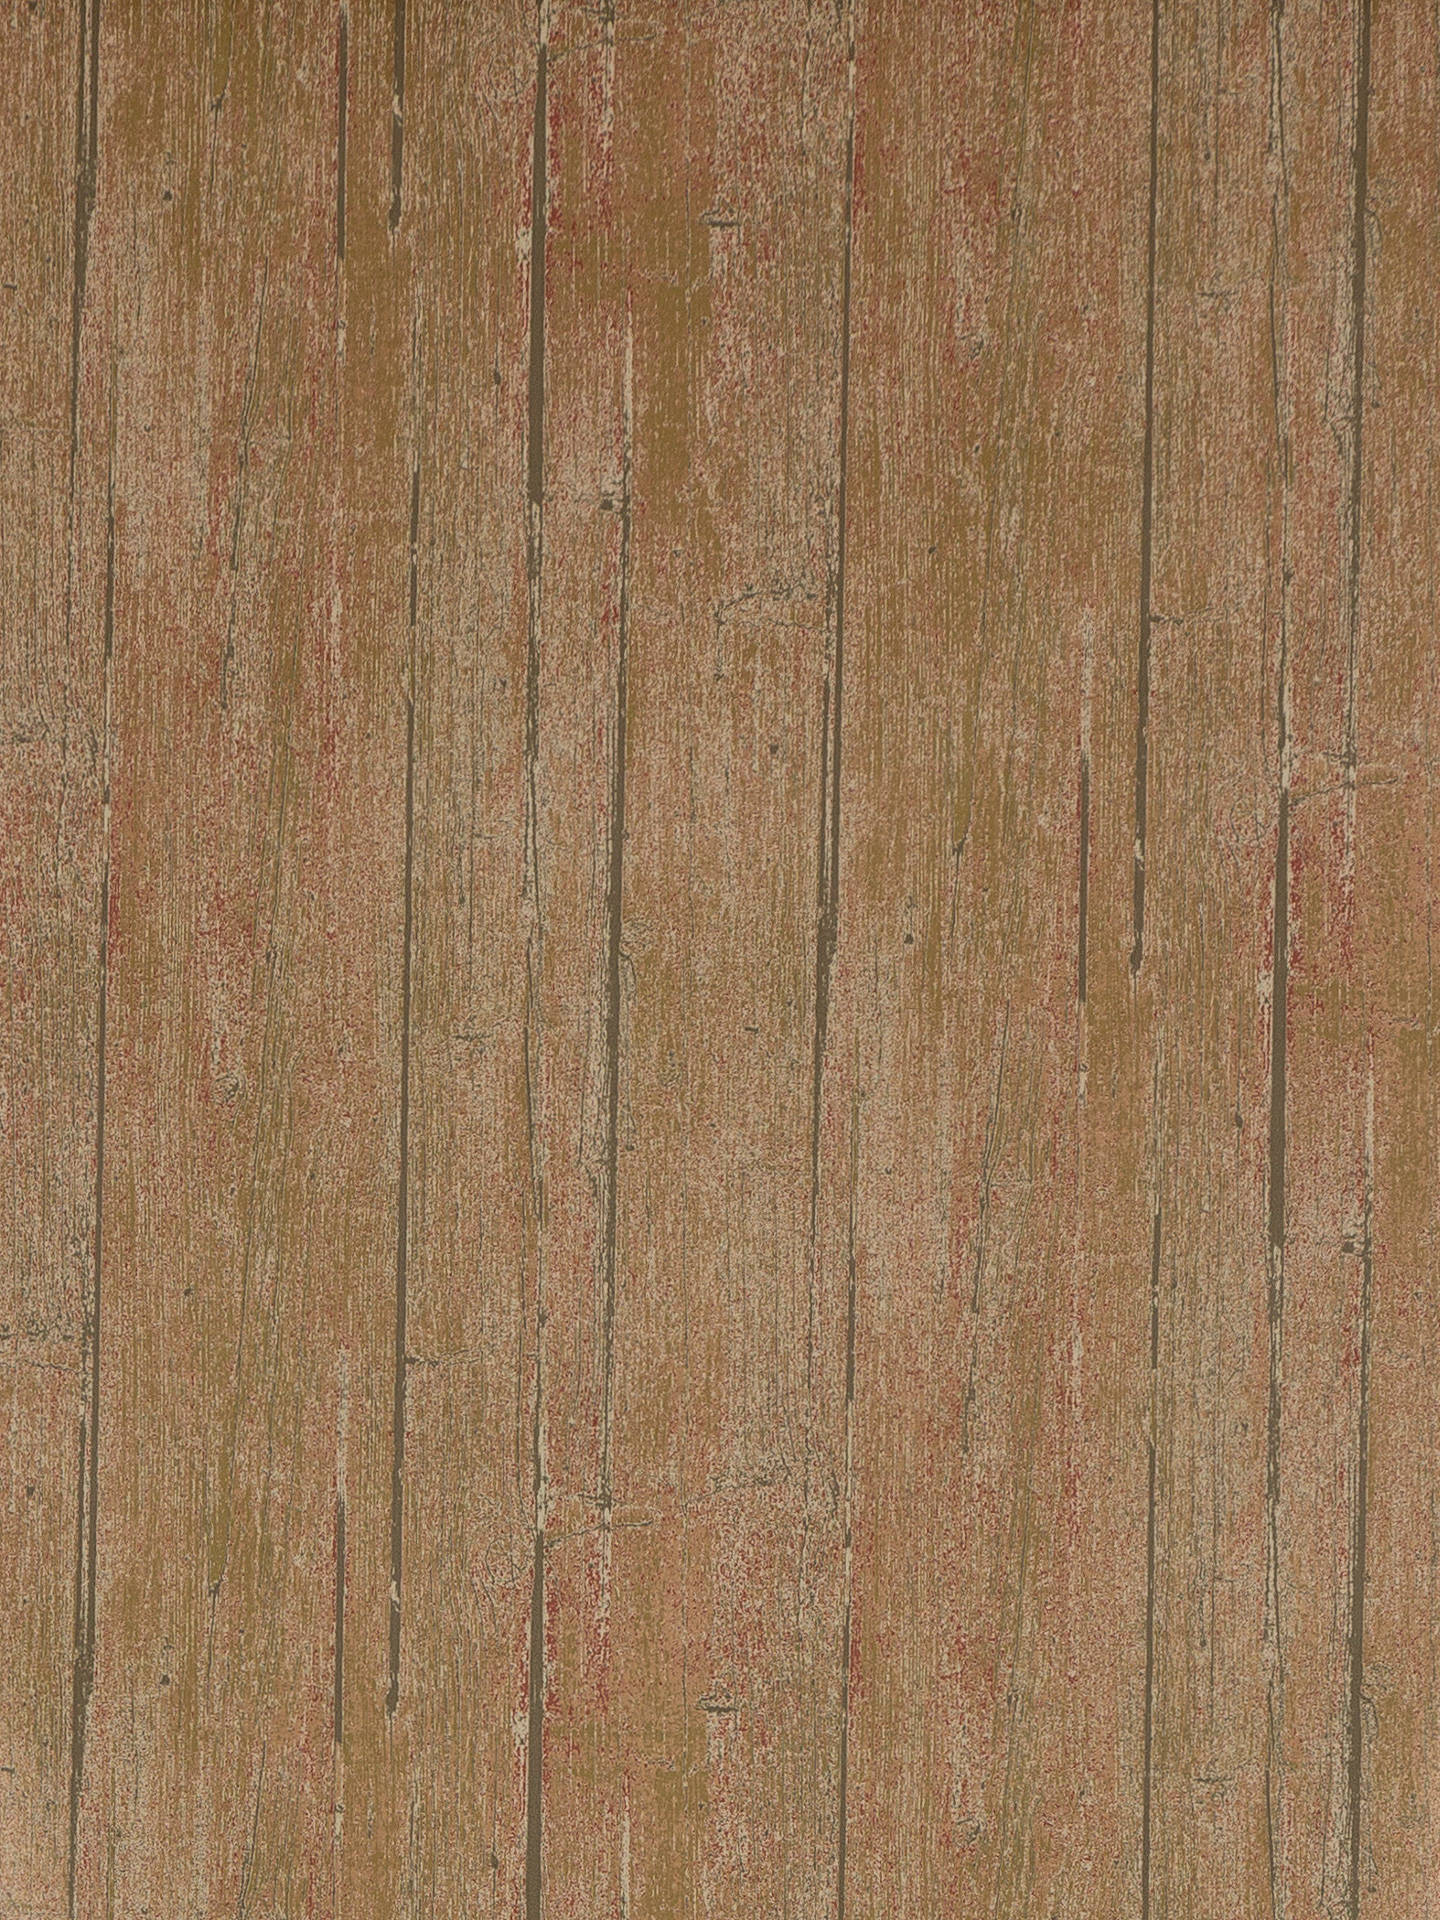 Buy Mulberry Home Wood Panel Wallpaper, Rust, FG081.P101 Online at johnlewis.com